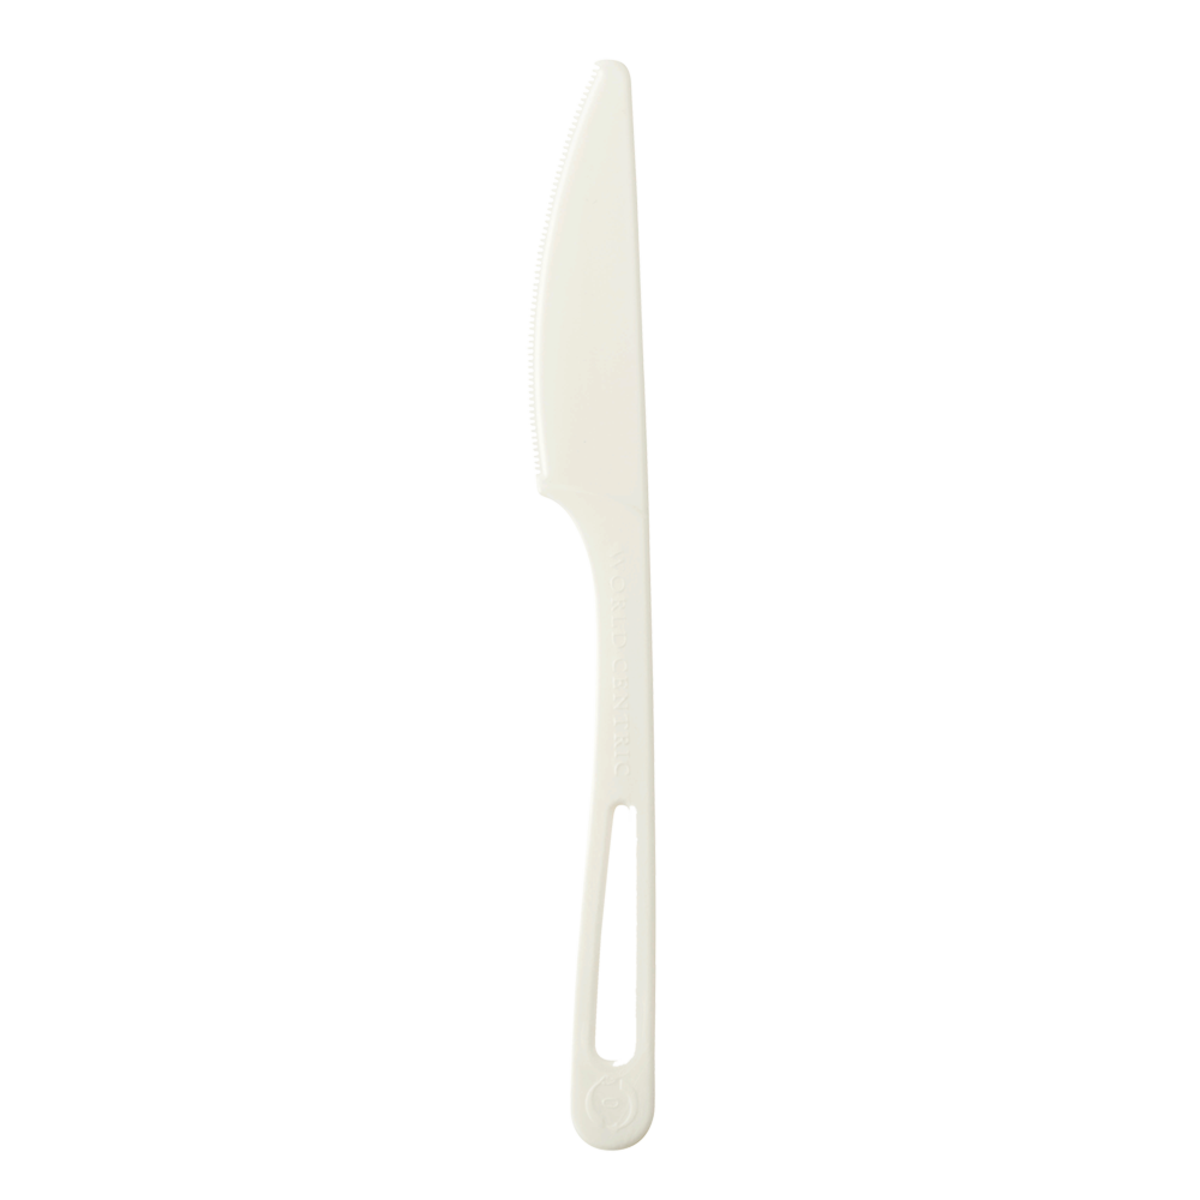 Case of 1000 Plant Starch Knives